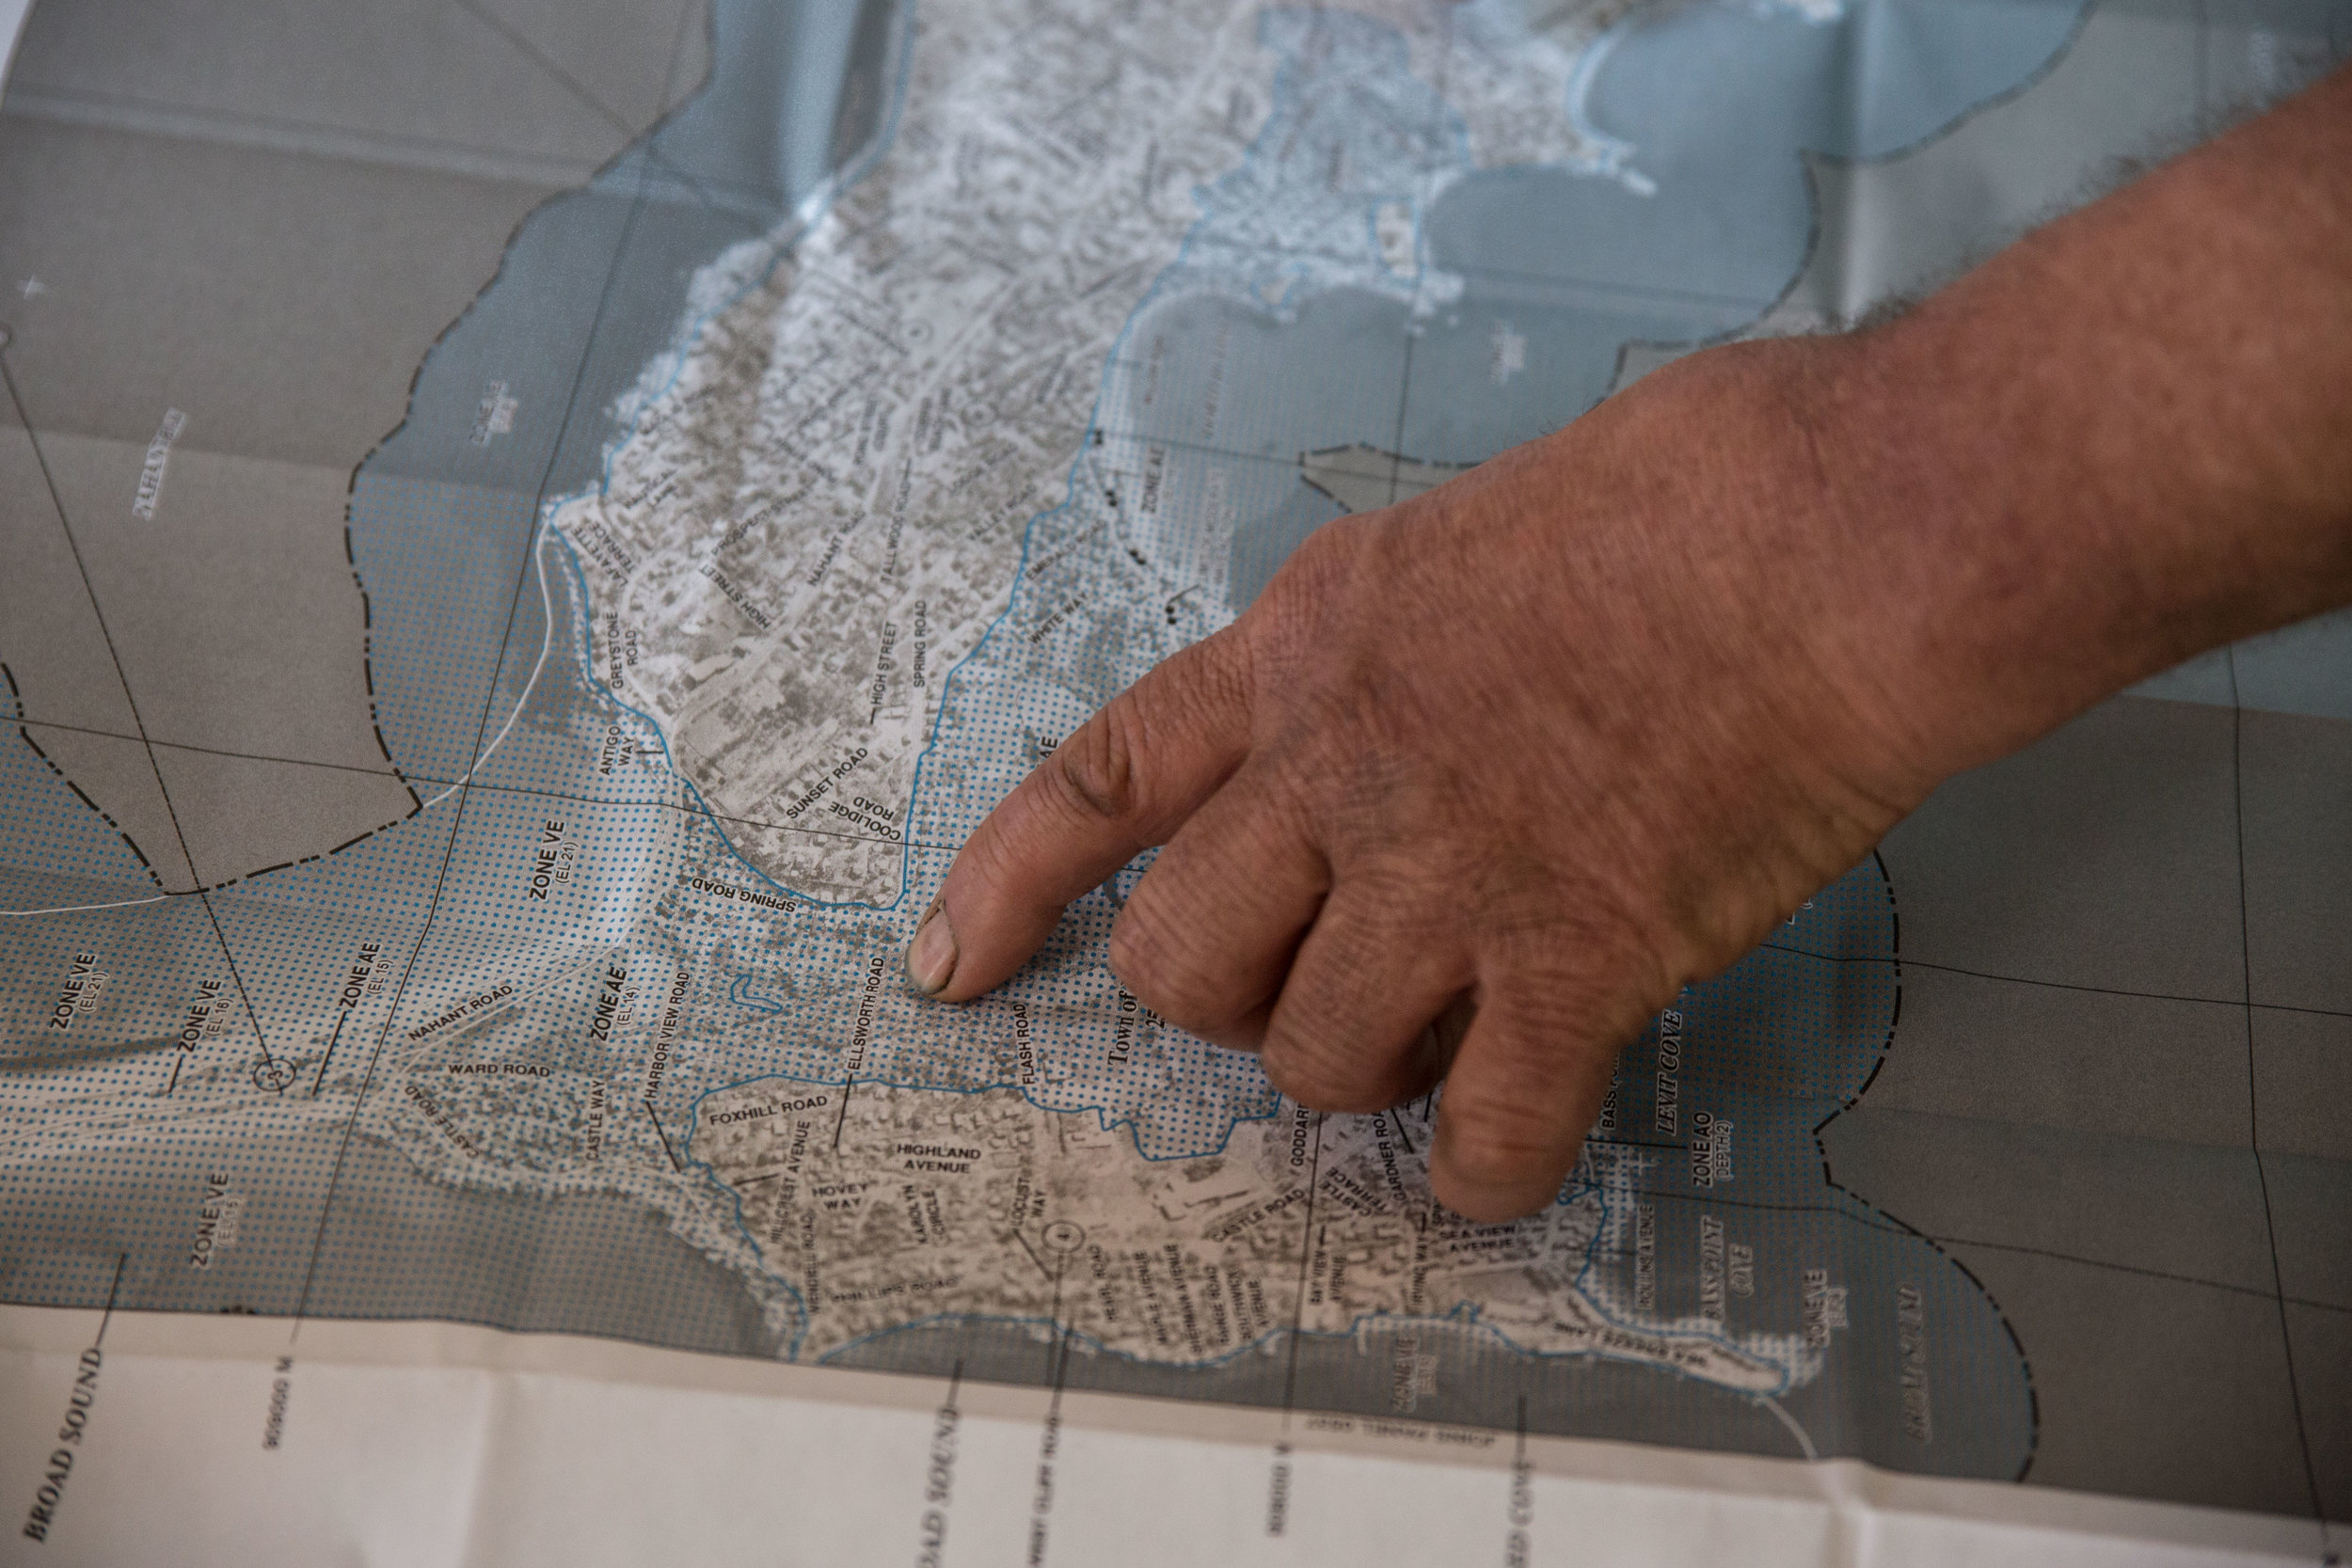 Barile has spent plenty of time with the federal flood risk maps for Nahant. The town recently hired a consultant to correct inaccuracies in the underlying data that FEMA used to create these maps.